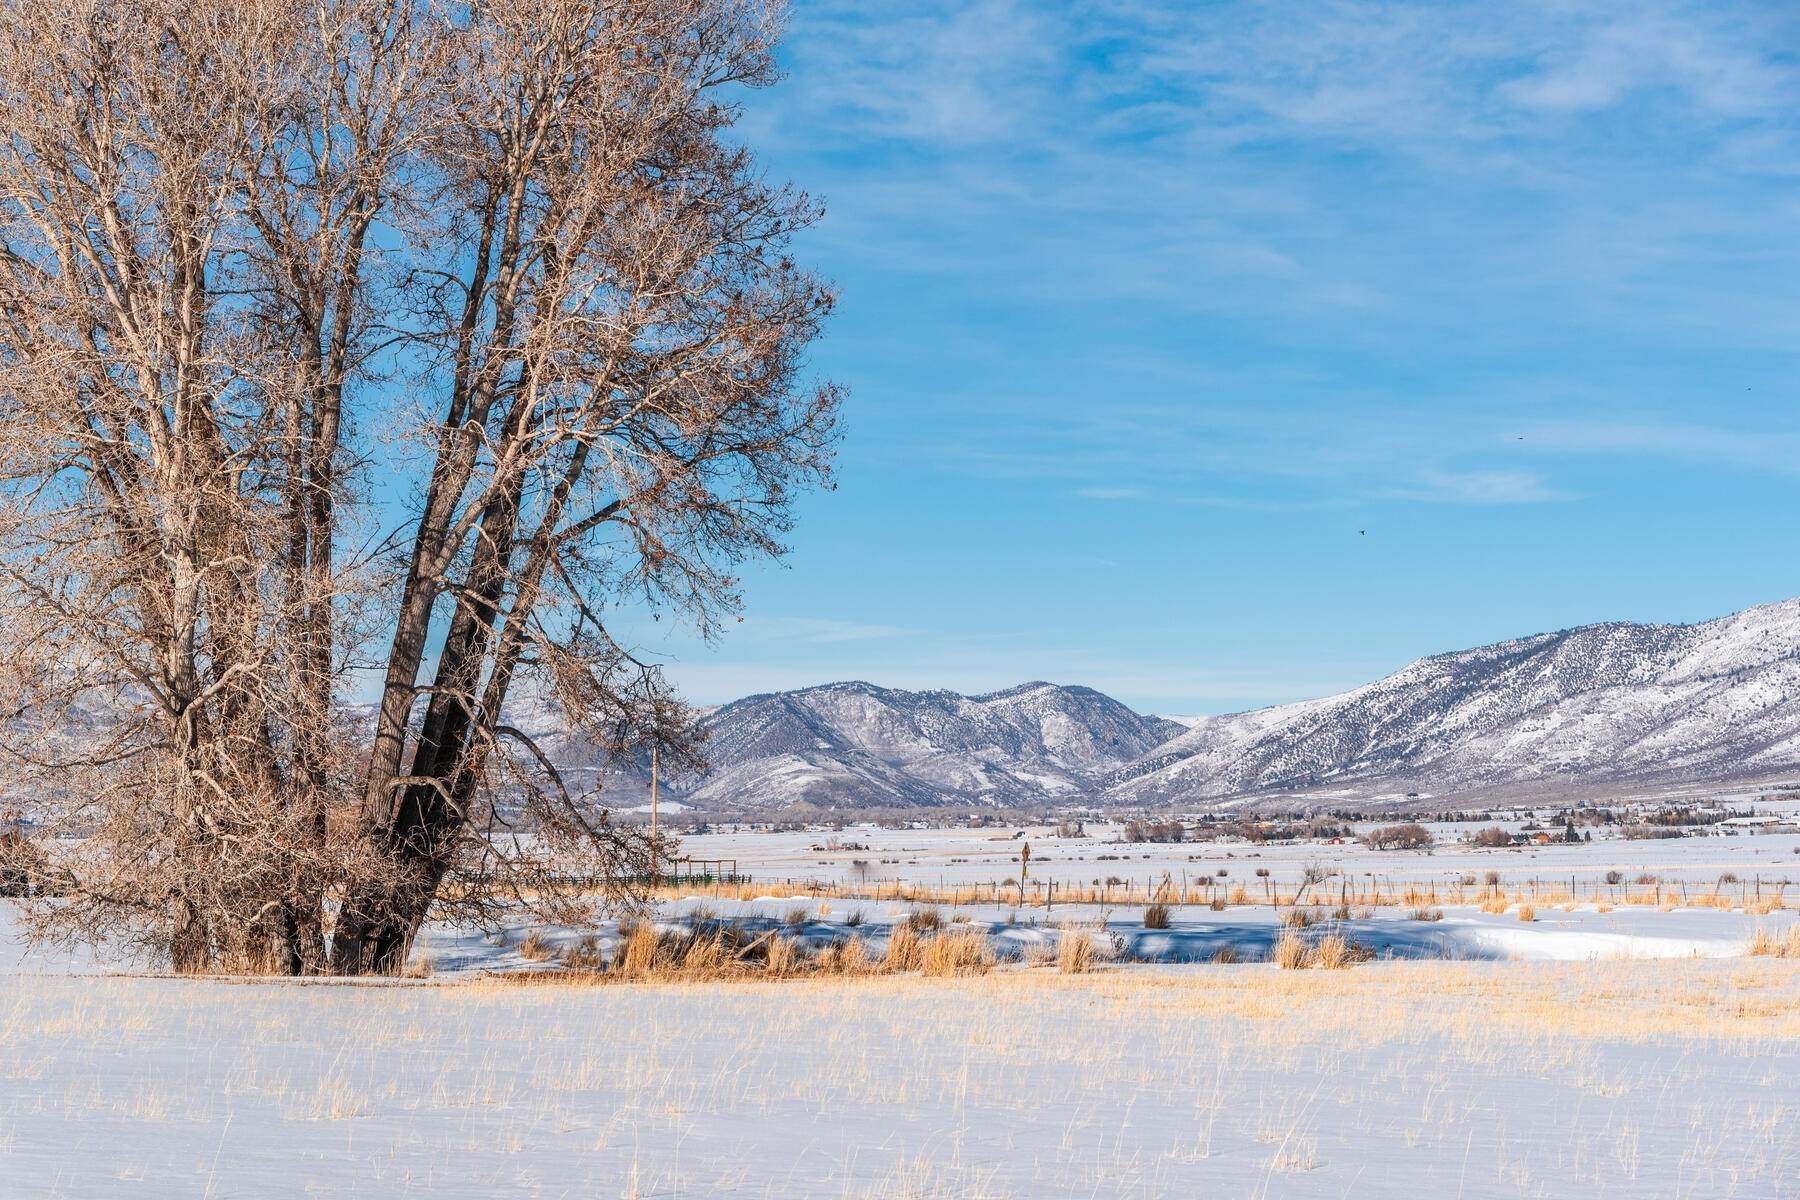 Land for Sale at County-Approved Residential Development Opportunity Just Minutes From Park City Indian Hollow Creek Kamas, Utah 84036 United States